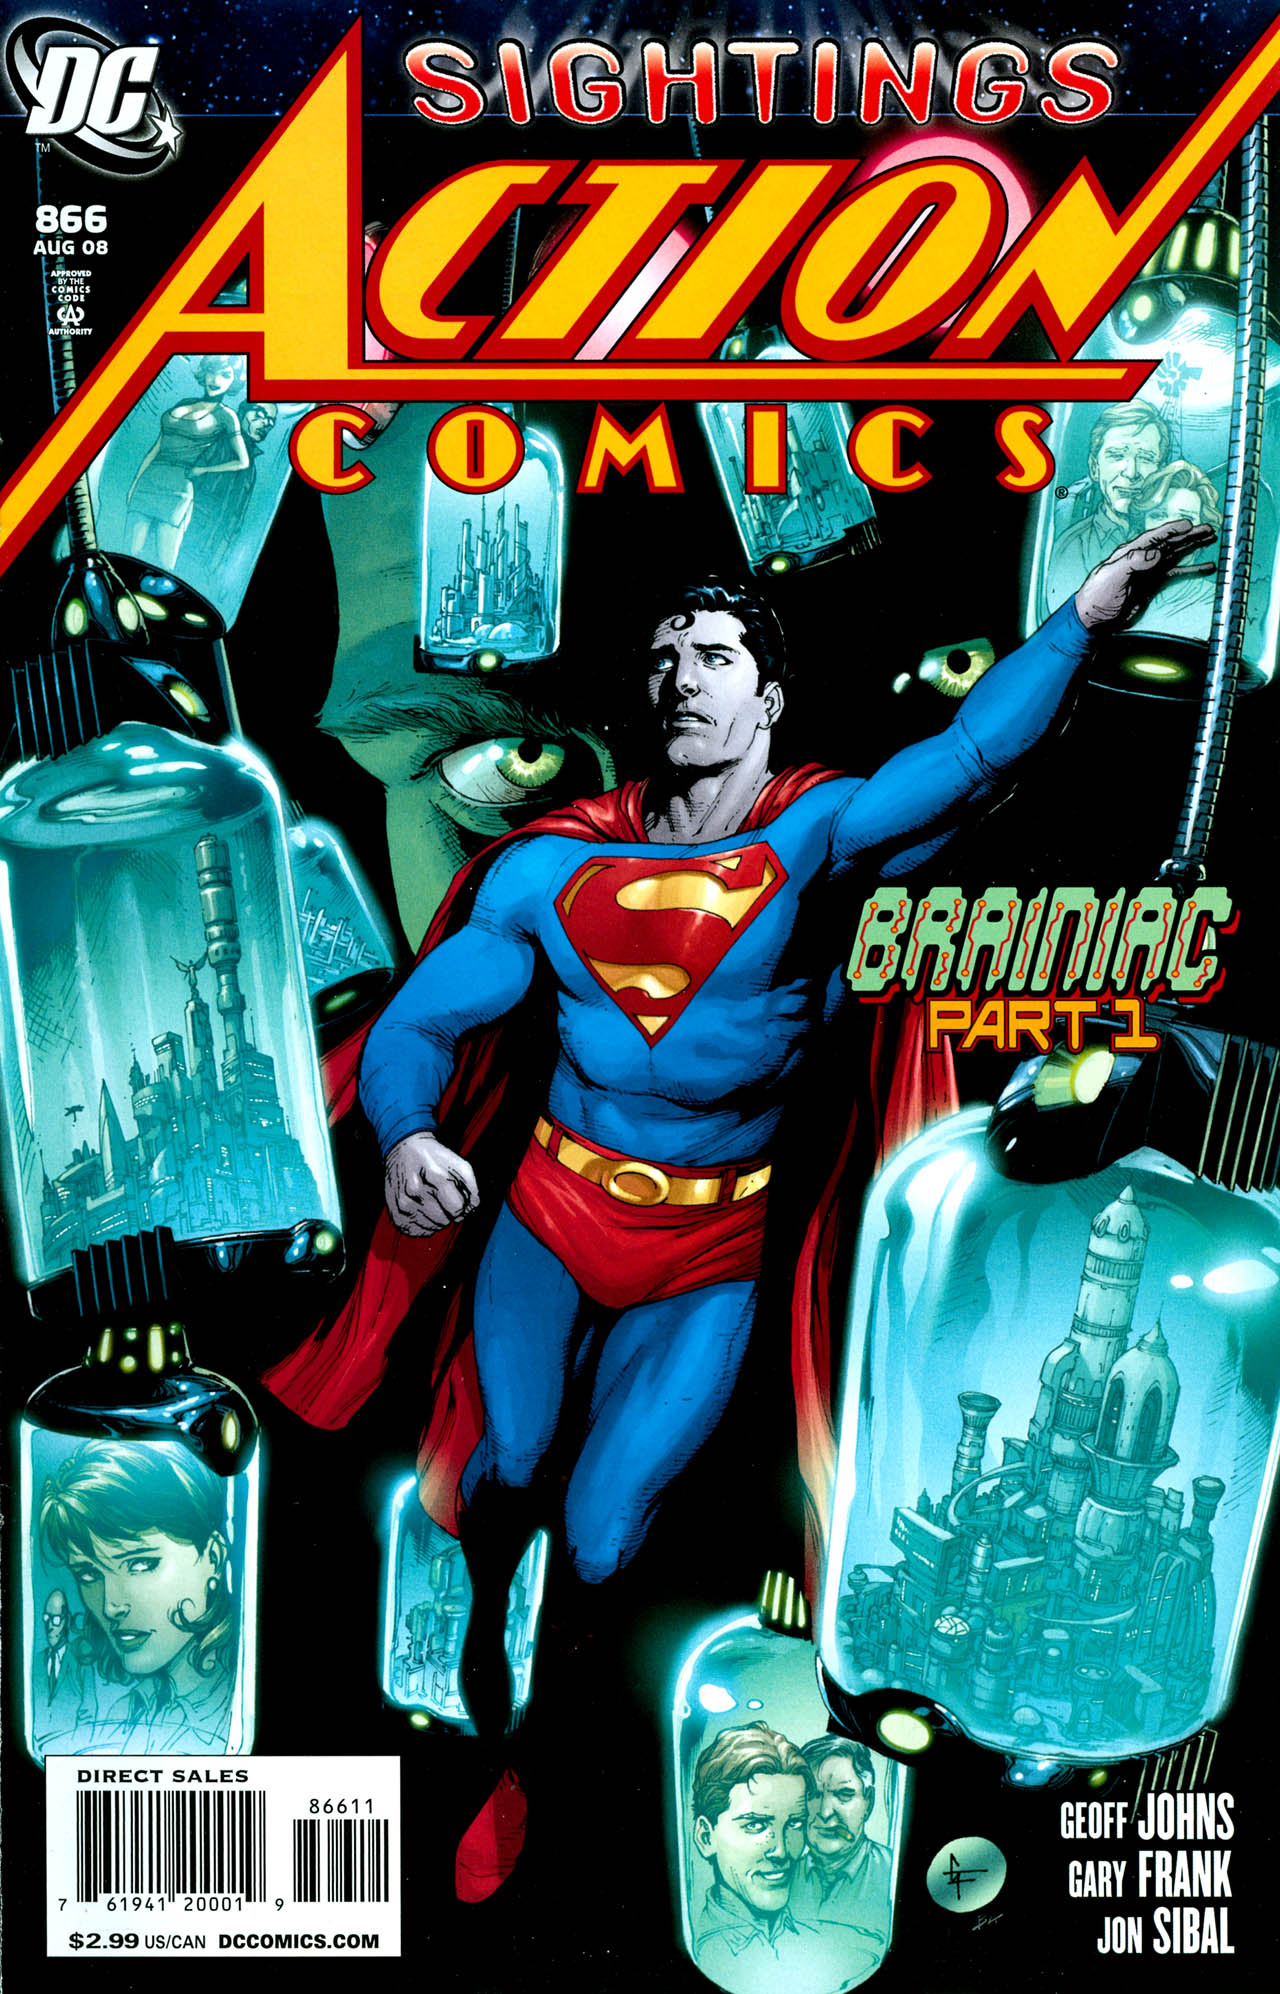 Read online Action Comics (1938) comic -  Issue #866 - 2